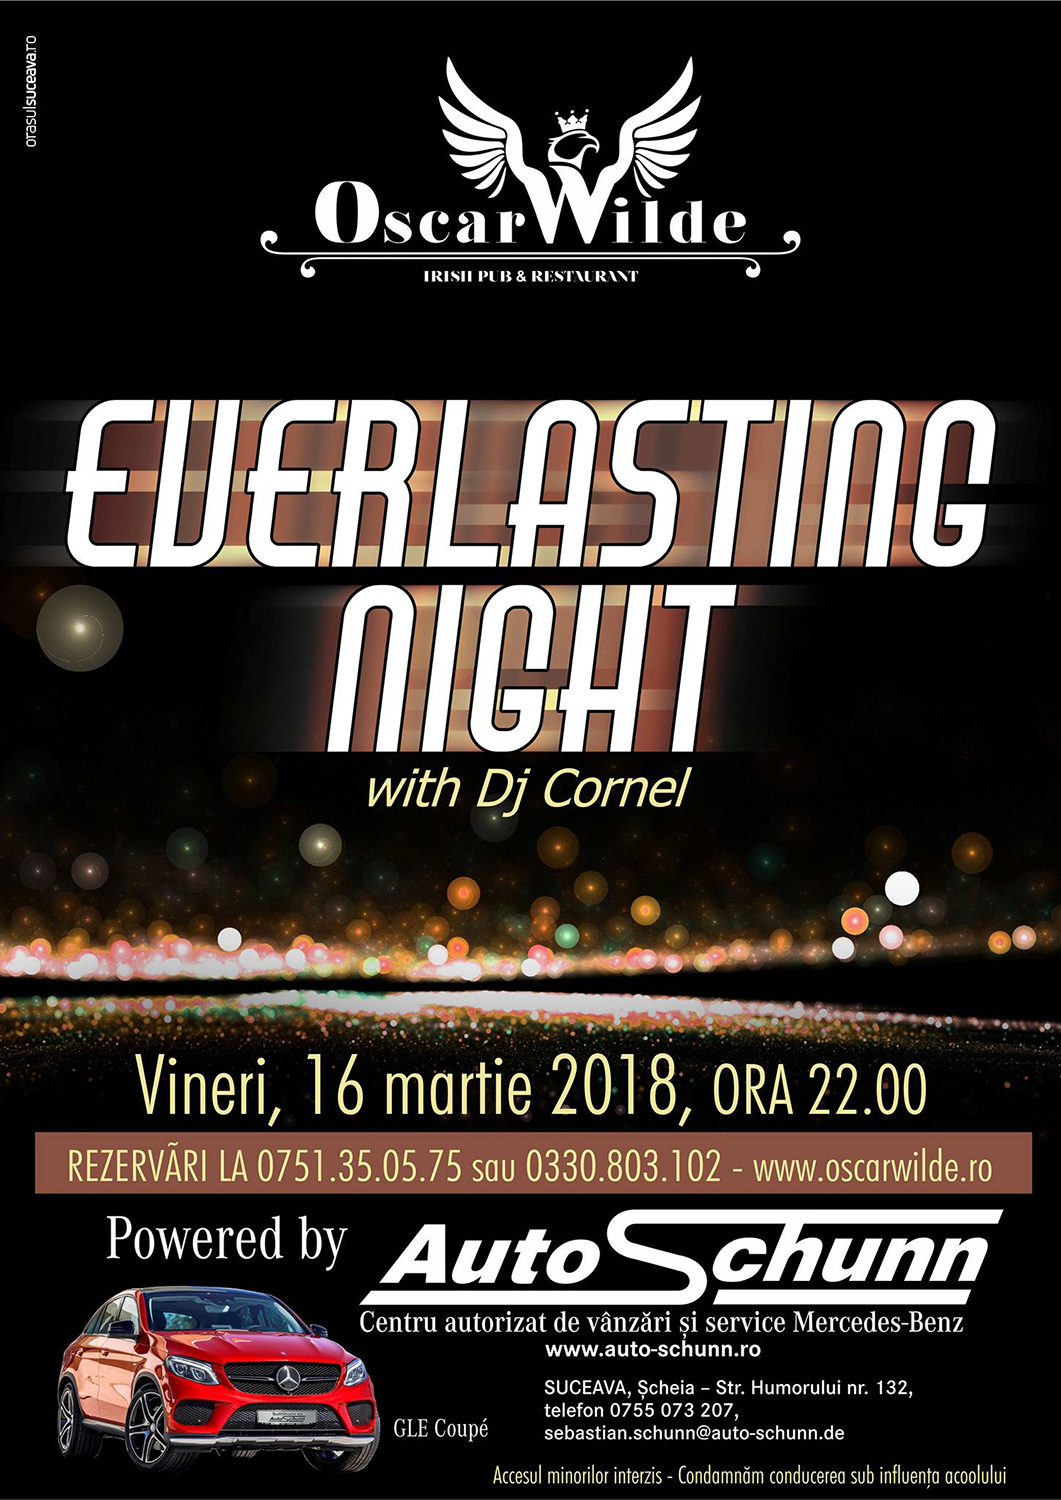 Everlasting Night